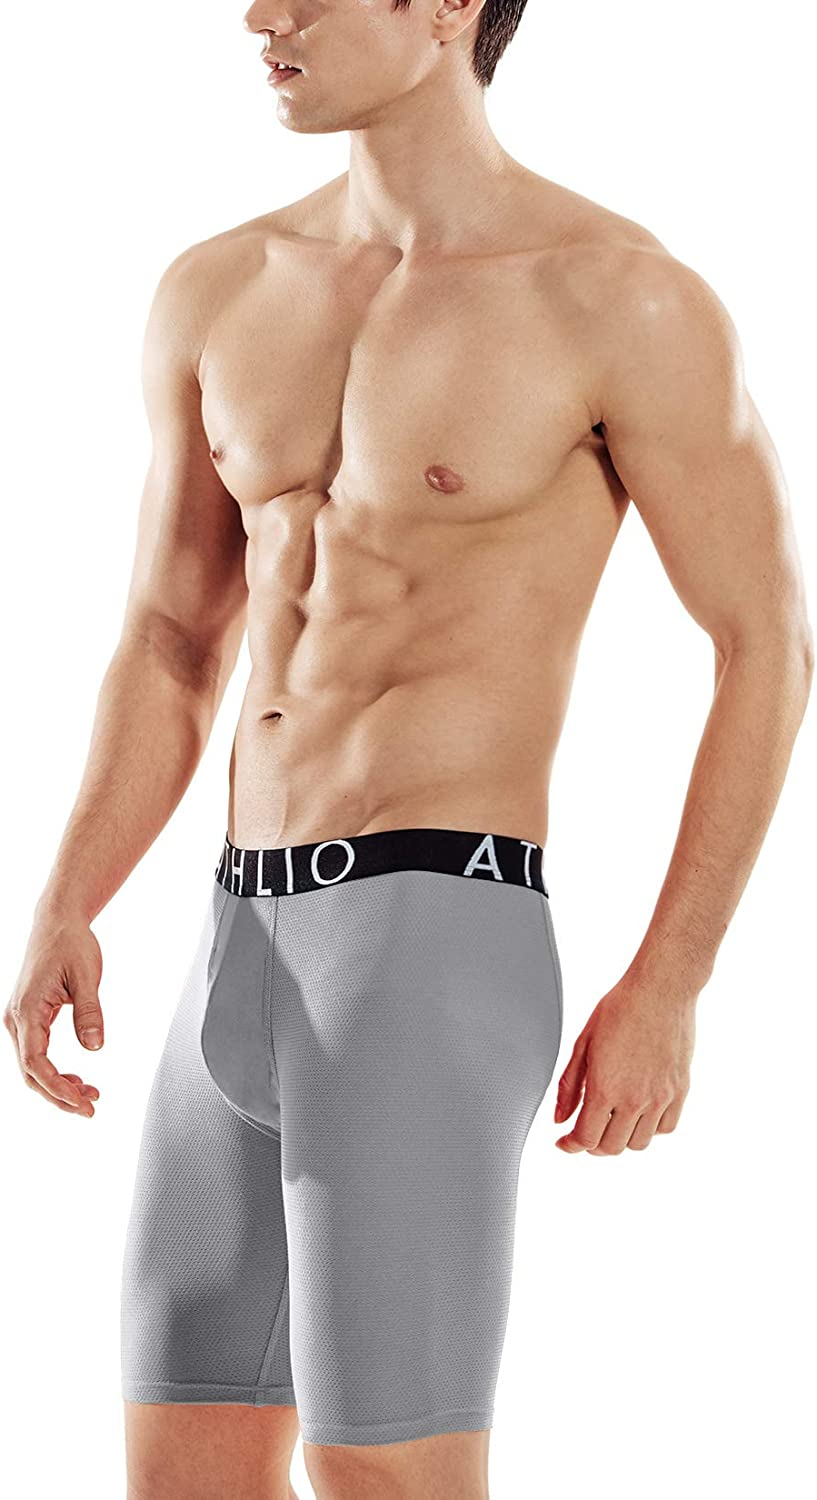 ATHLIO Men's (Pack of 3) Relaxed Stretch Open-Fly Cool Dry Brief Mesh Underwear Trunk: Clothing